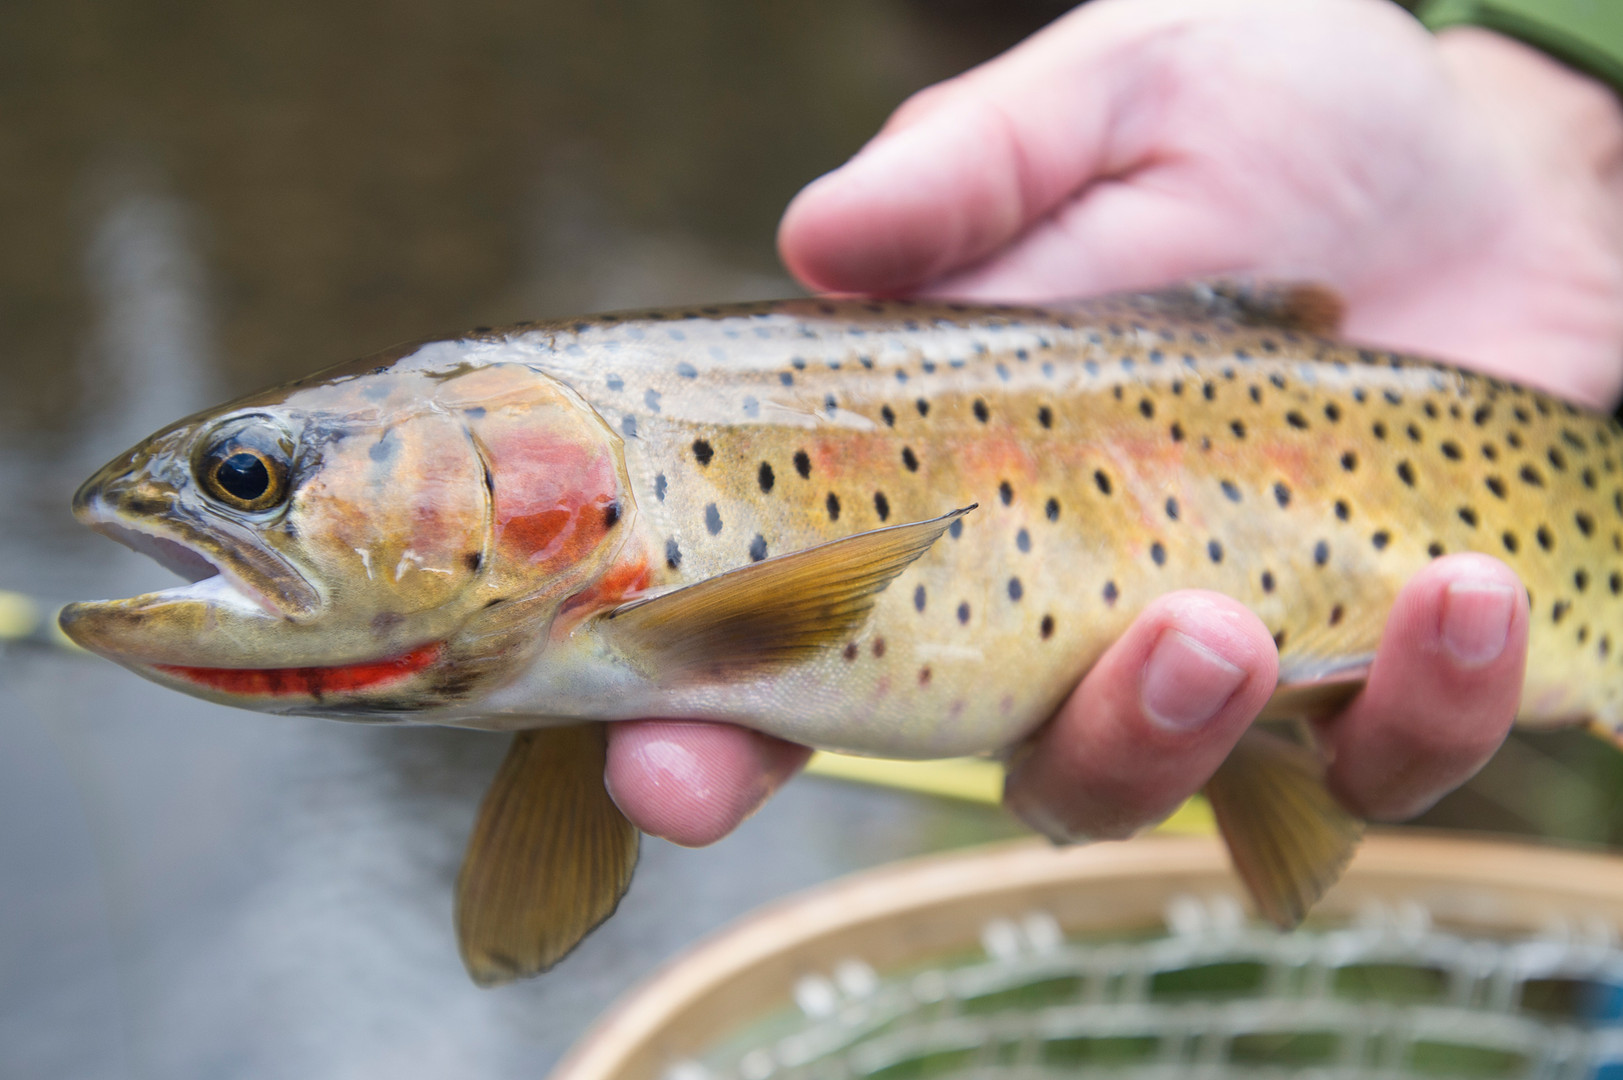 A cutthroat trout from The Loch is removed from a net to be returned to the water.